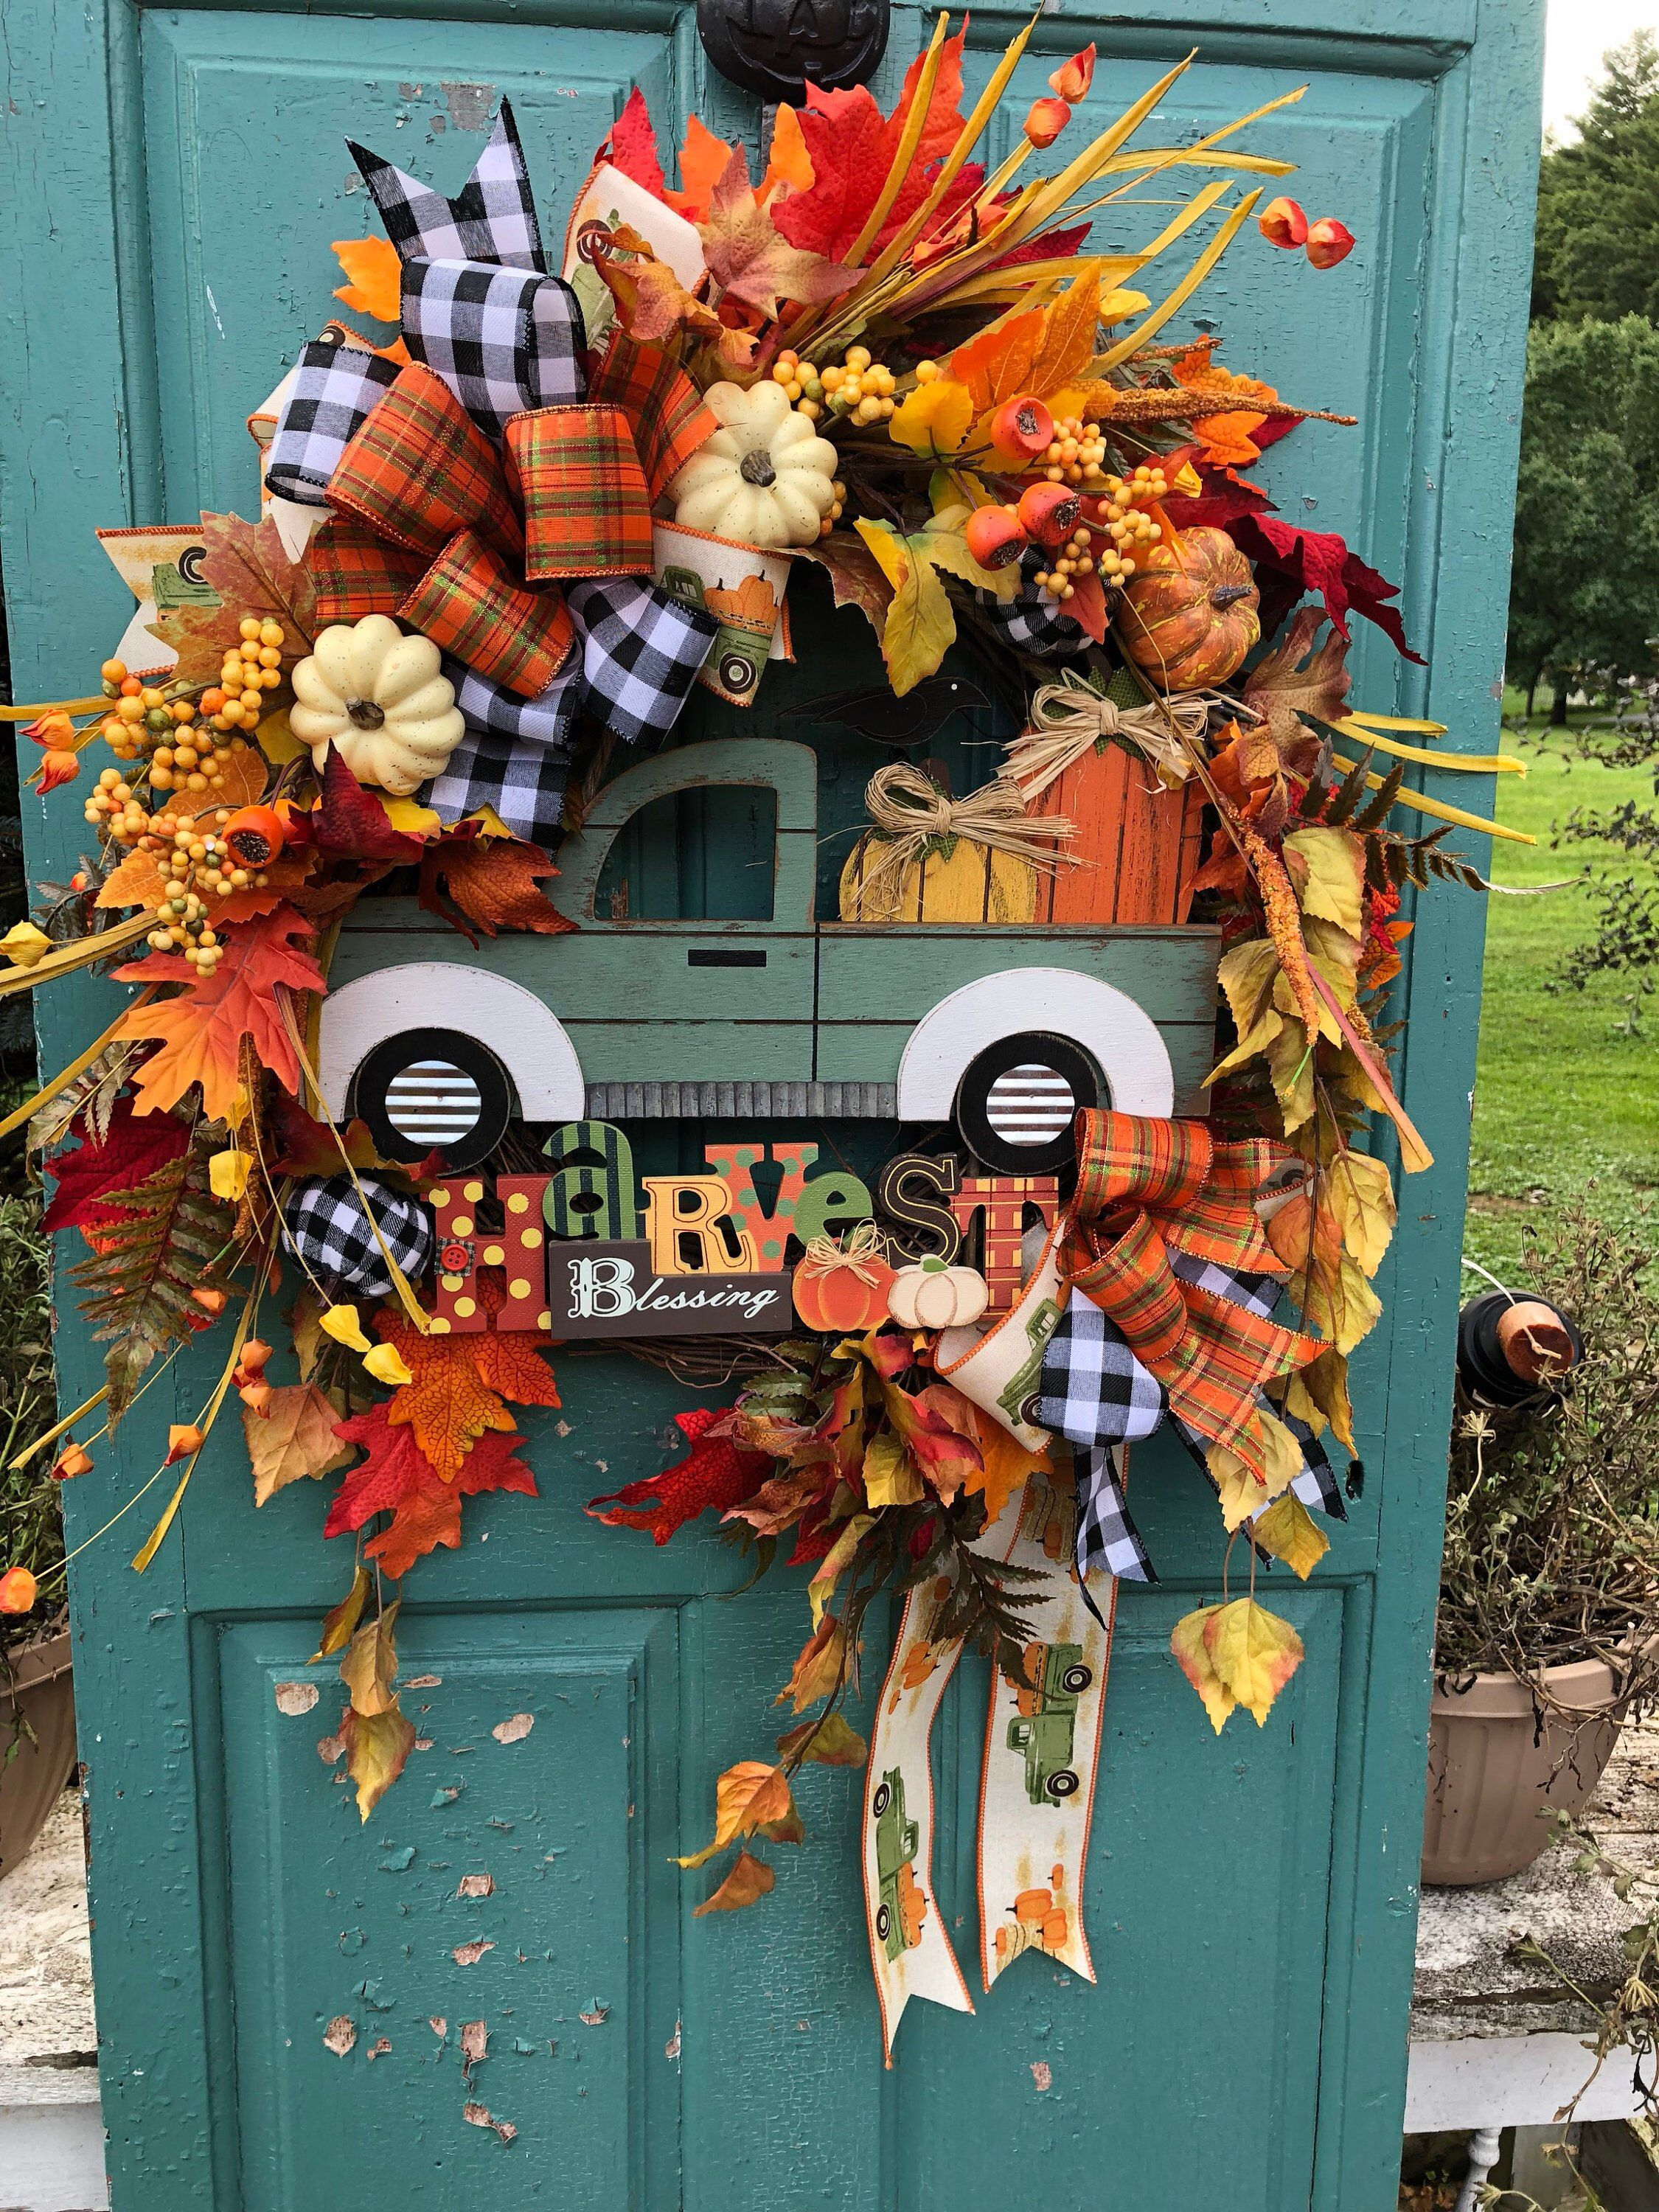 Excited to share this item from my #etsy shop: Fall Wreath, Pickup Truck Wreath, Green Truck Wreath, Fall Wreath for Front Door, Farmhouse Wreath, Harvest Wreaths, Fall Harvest Wreaths #fallwreaths